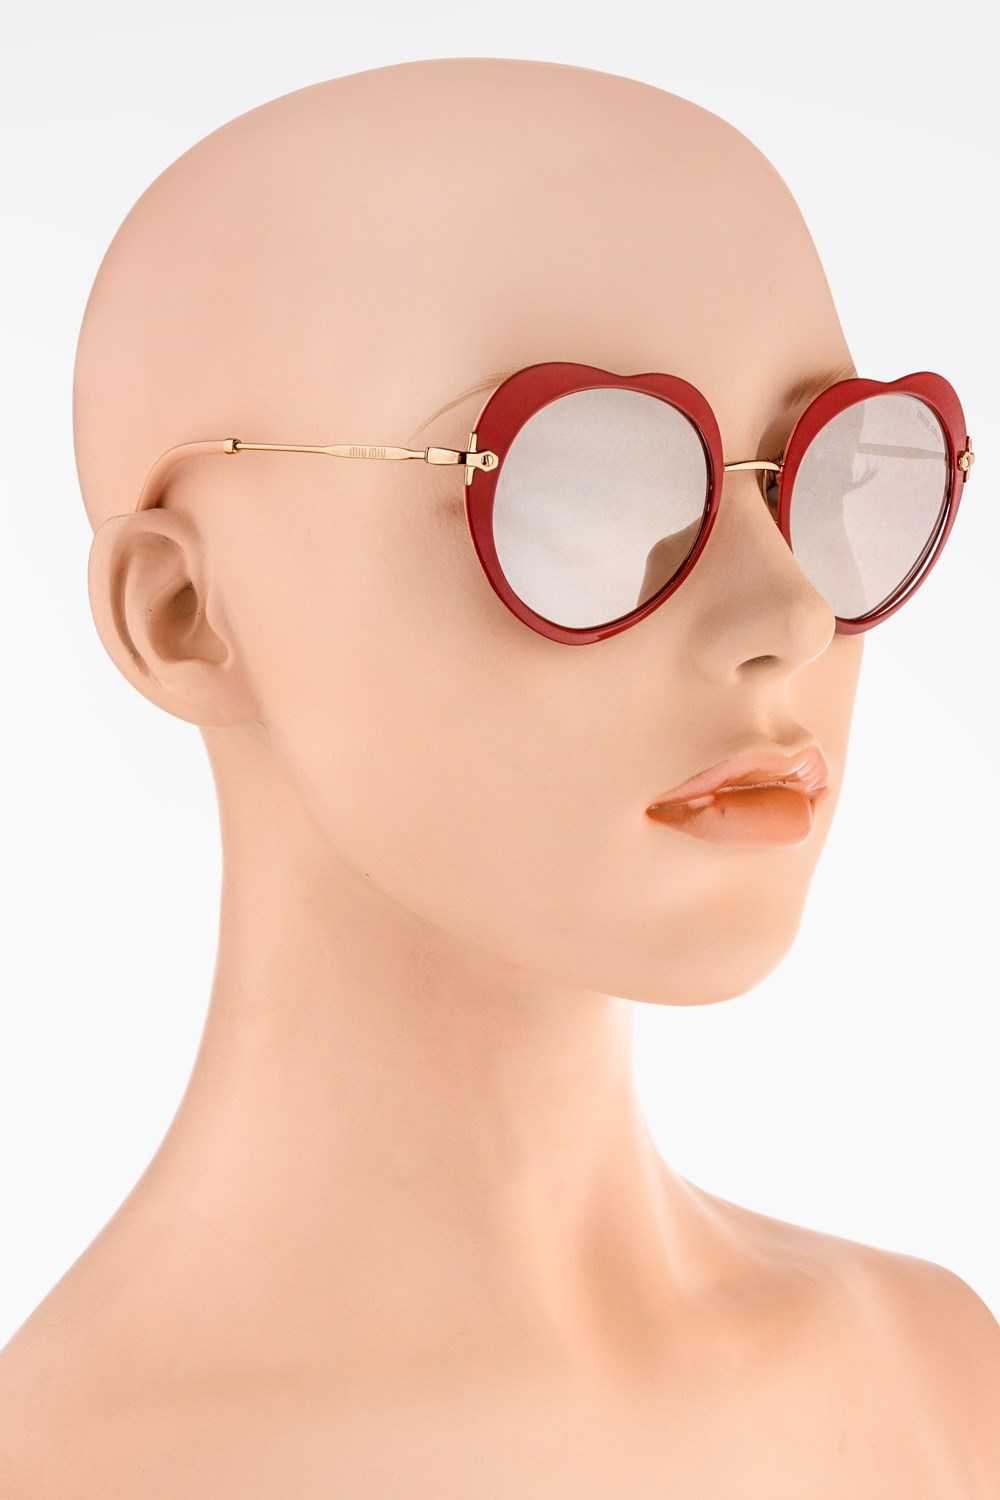 519d087bb31 Heart Shaped Metallic Sunglasses with Mirrored Lenses